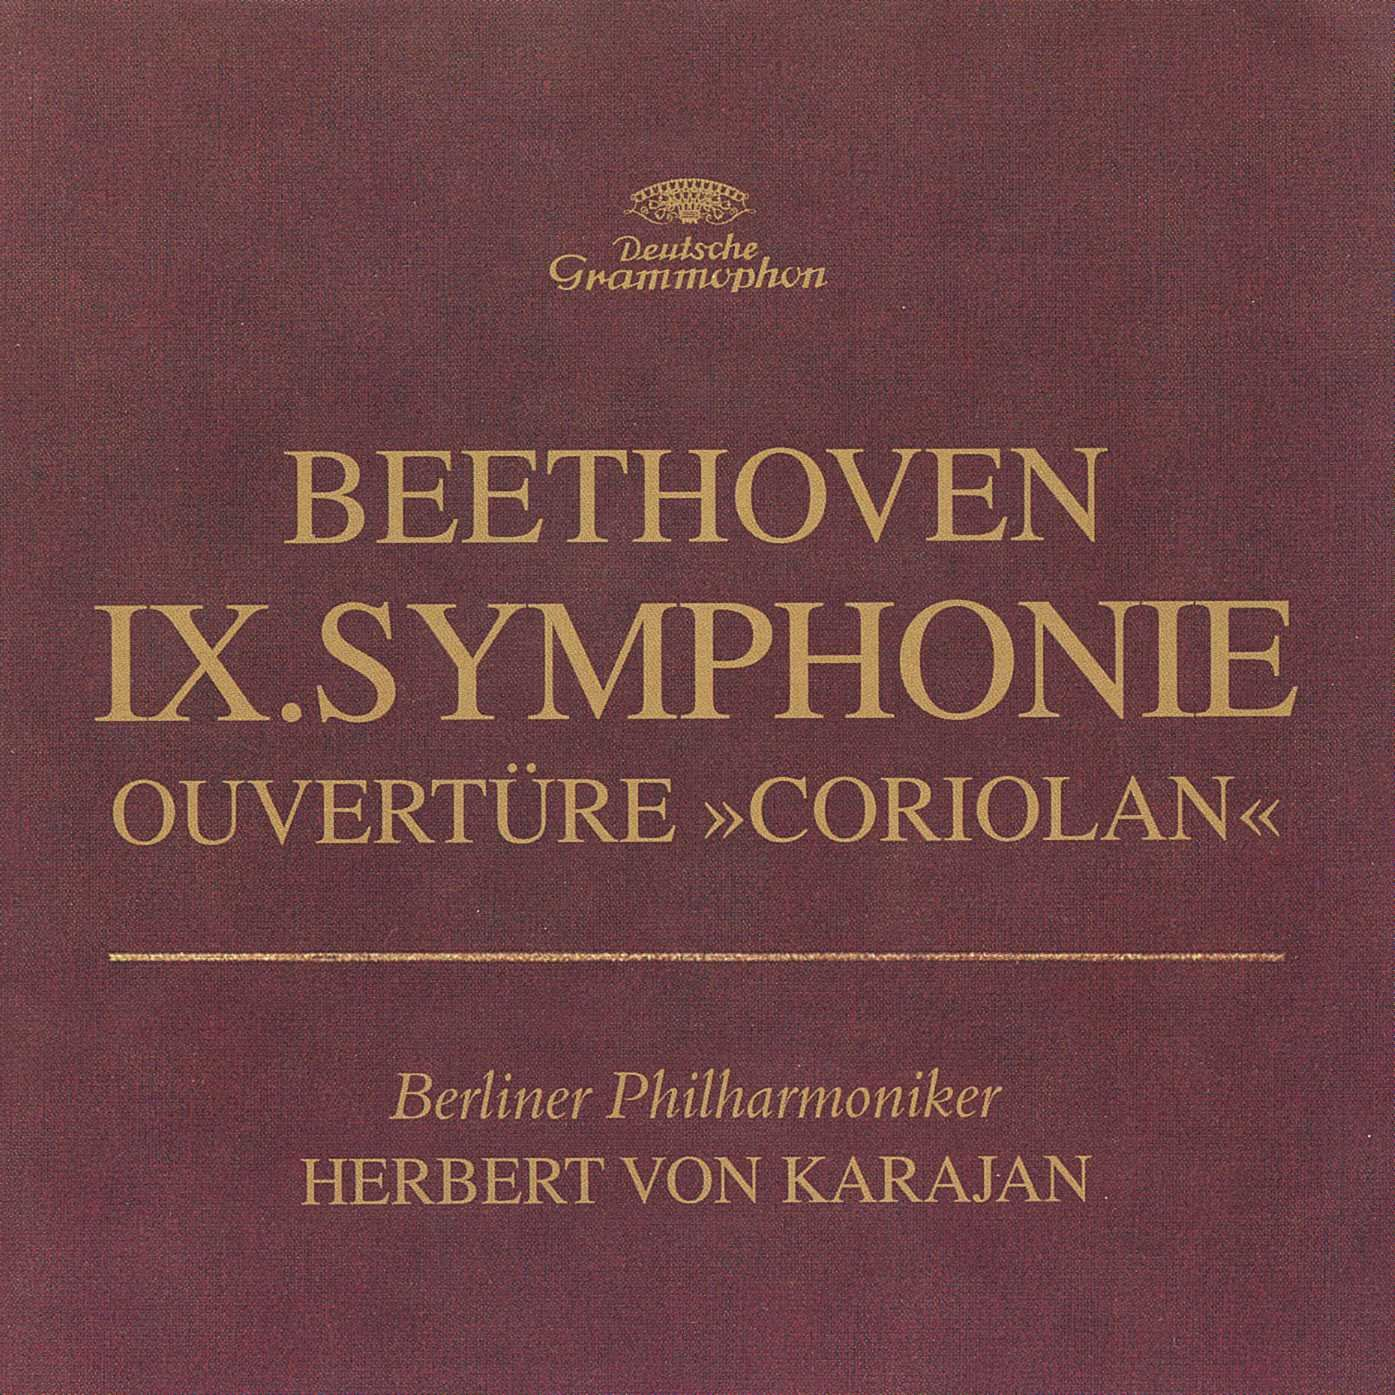 Beethoven: Symphony No. 9 / Coriolan Overture